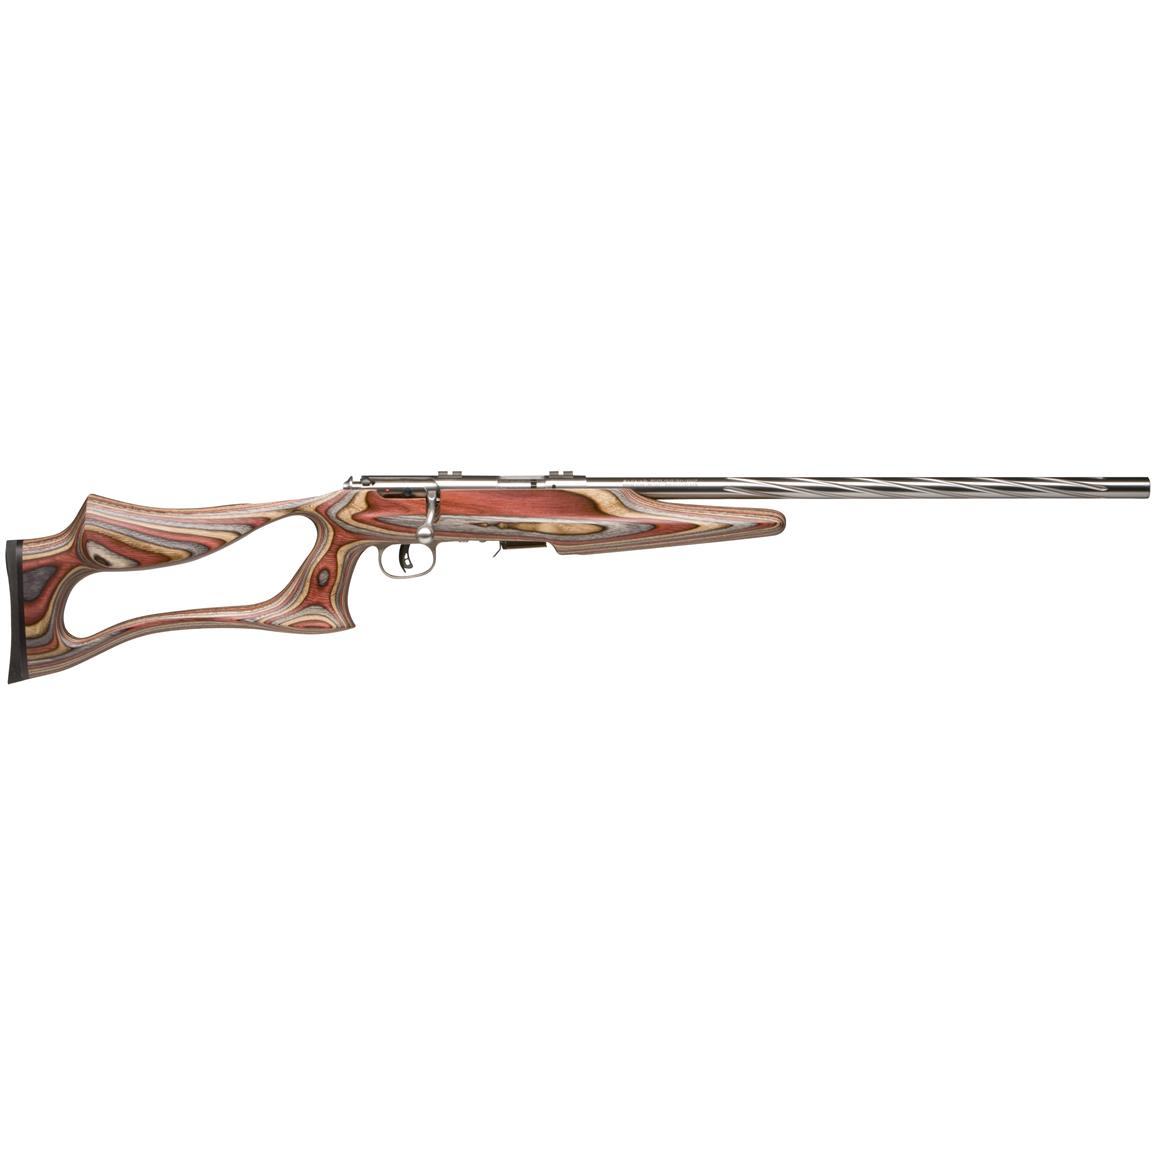 "Savage 93R17 BSEV, Bolt Action, .17 HMR, Rimfire, 96771, 062654967719, 21"" Stainless barrel"